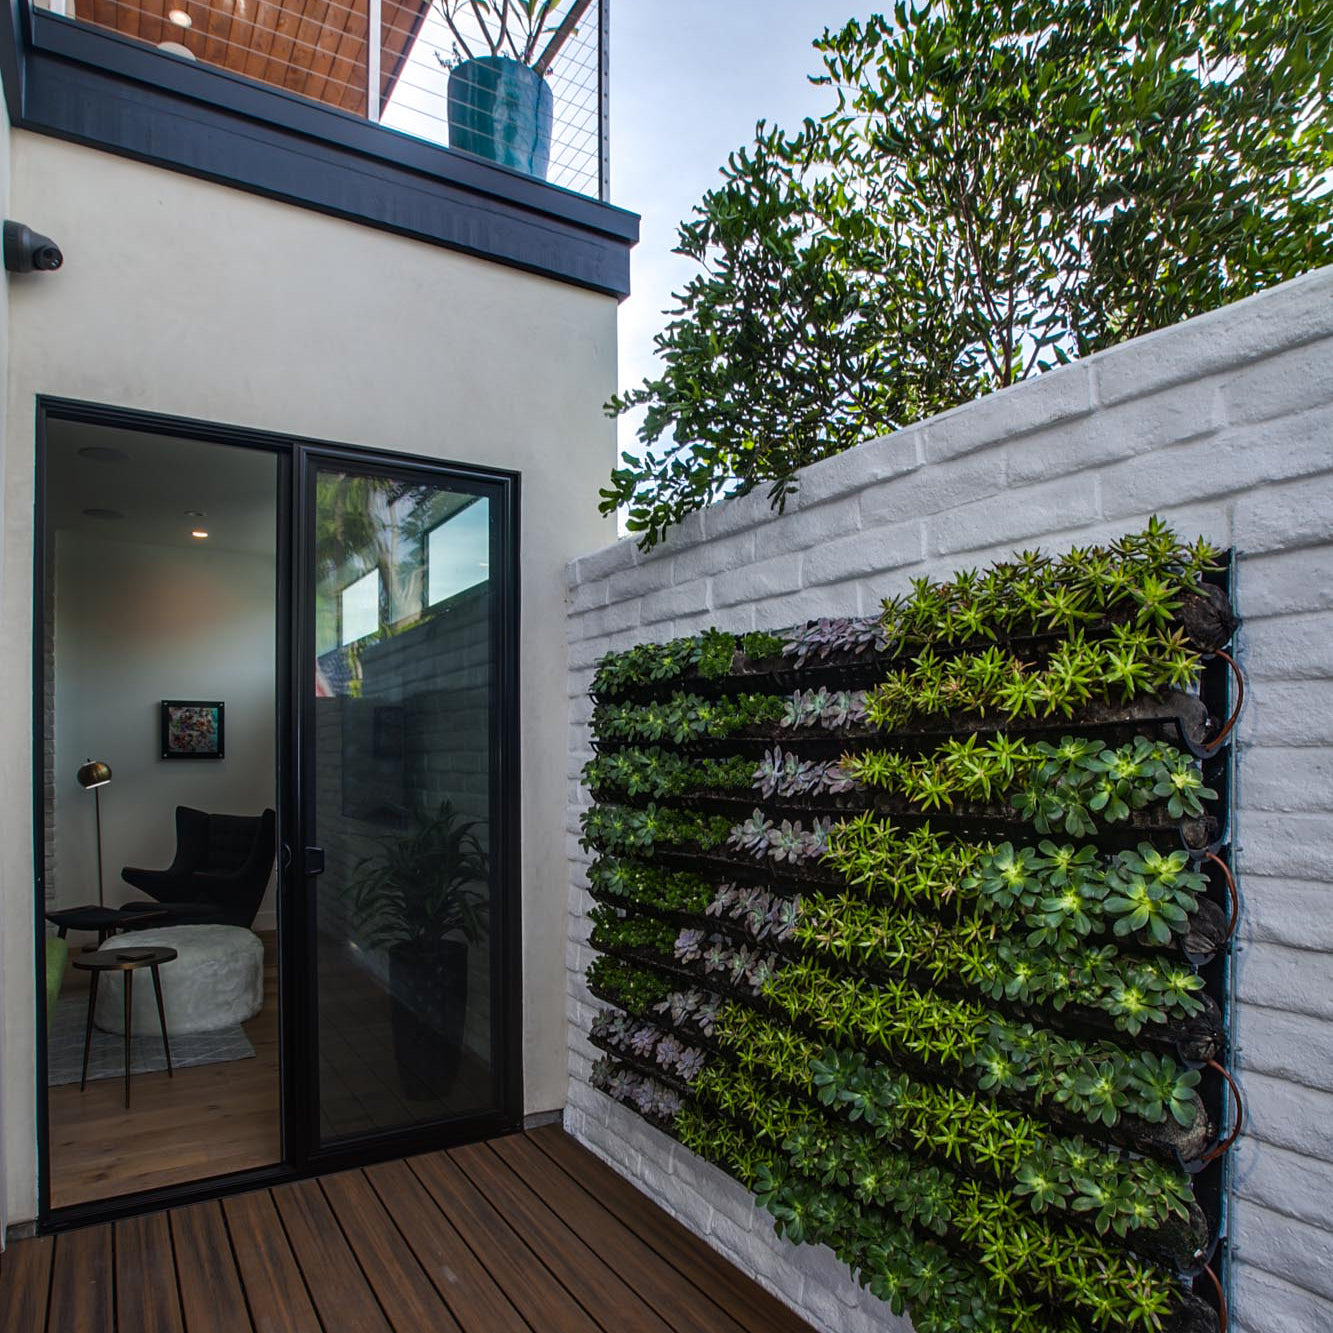 Vertexx® Living Wall Systems- Irvine, CA